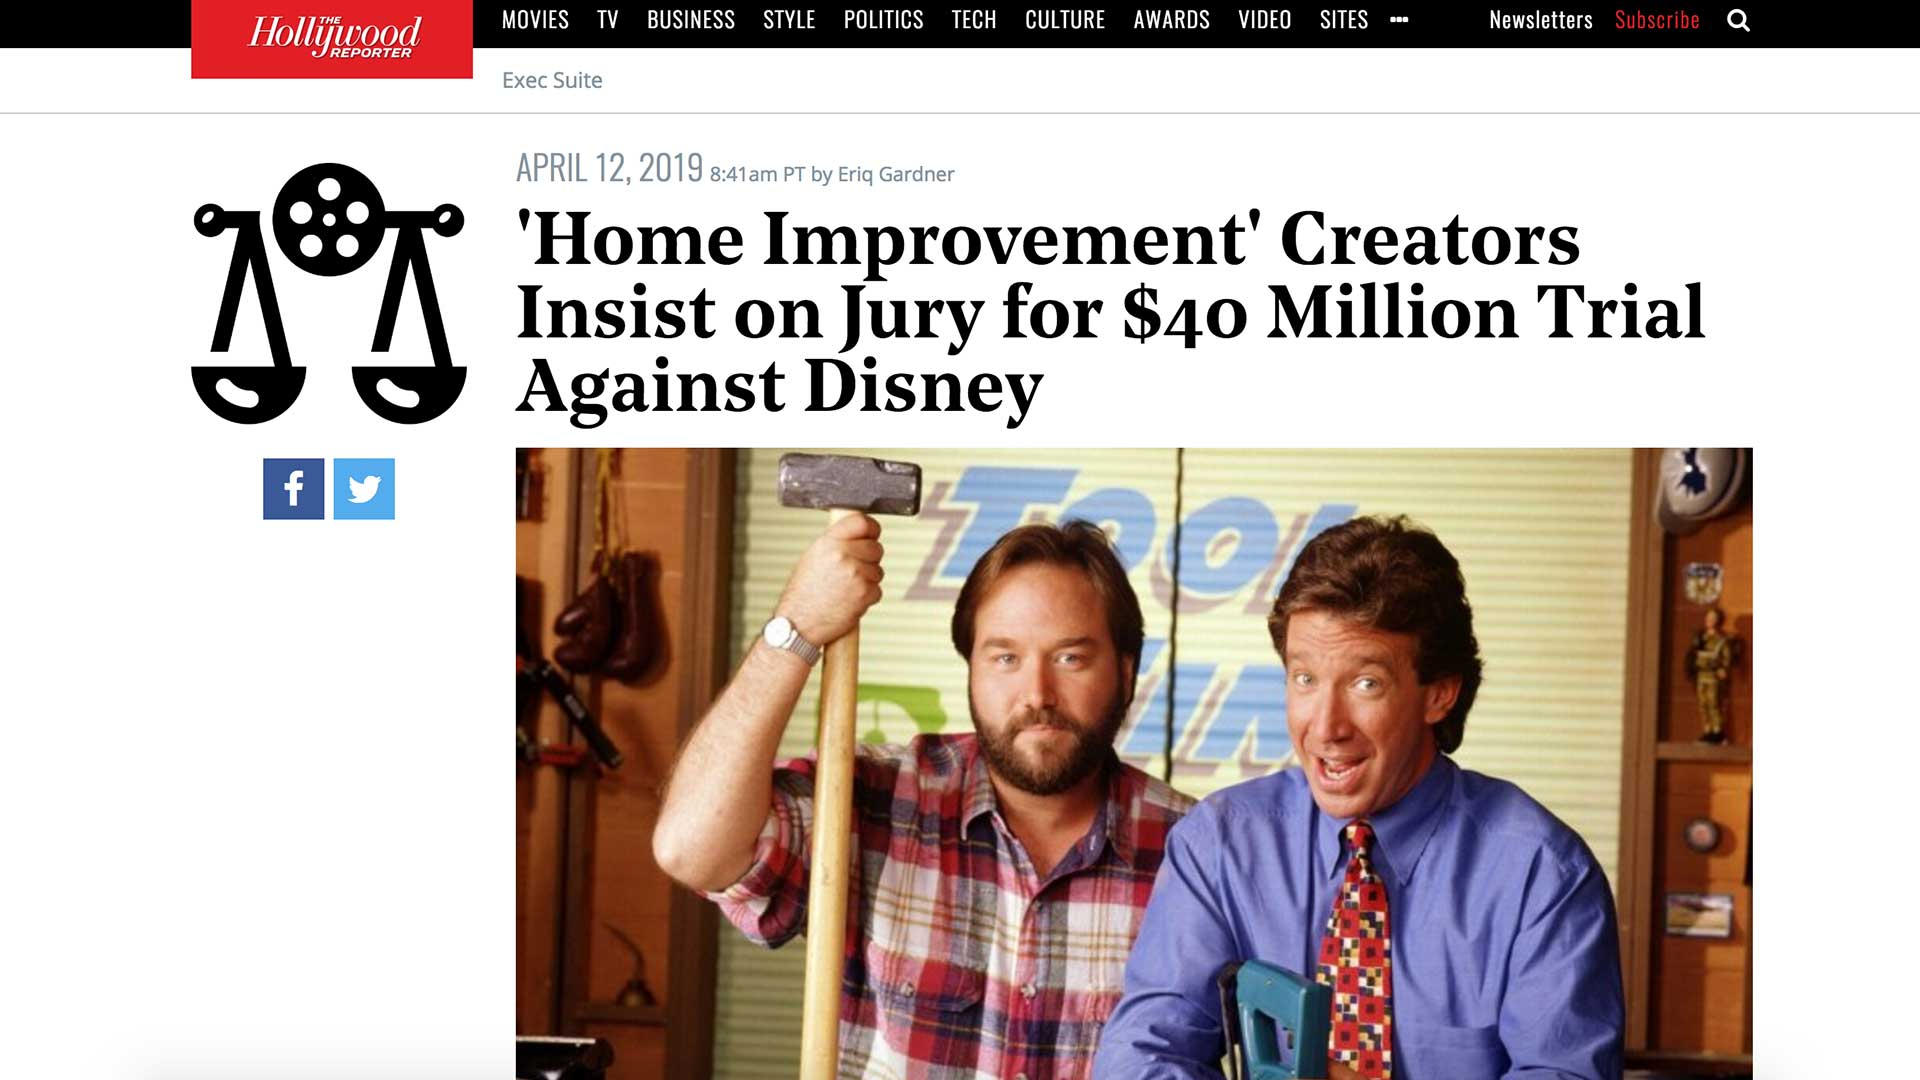 Fairness Rocks News 'Home Improvement' Creators Insist on Jury for $40 Million Trial Against Disney